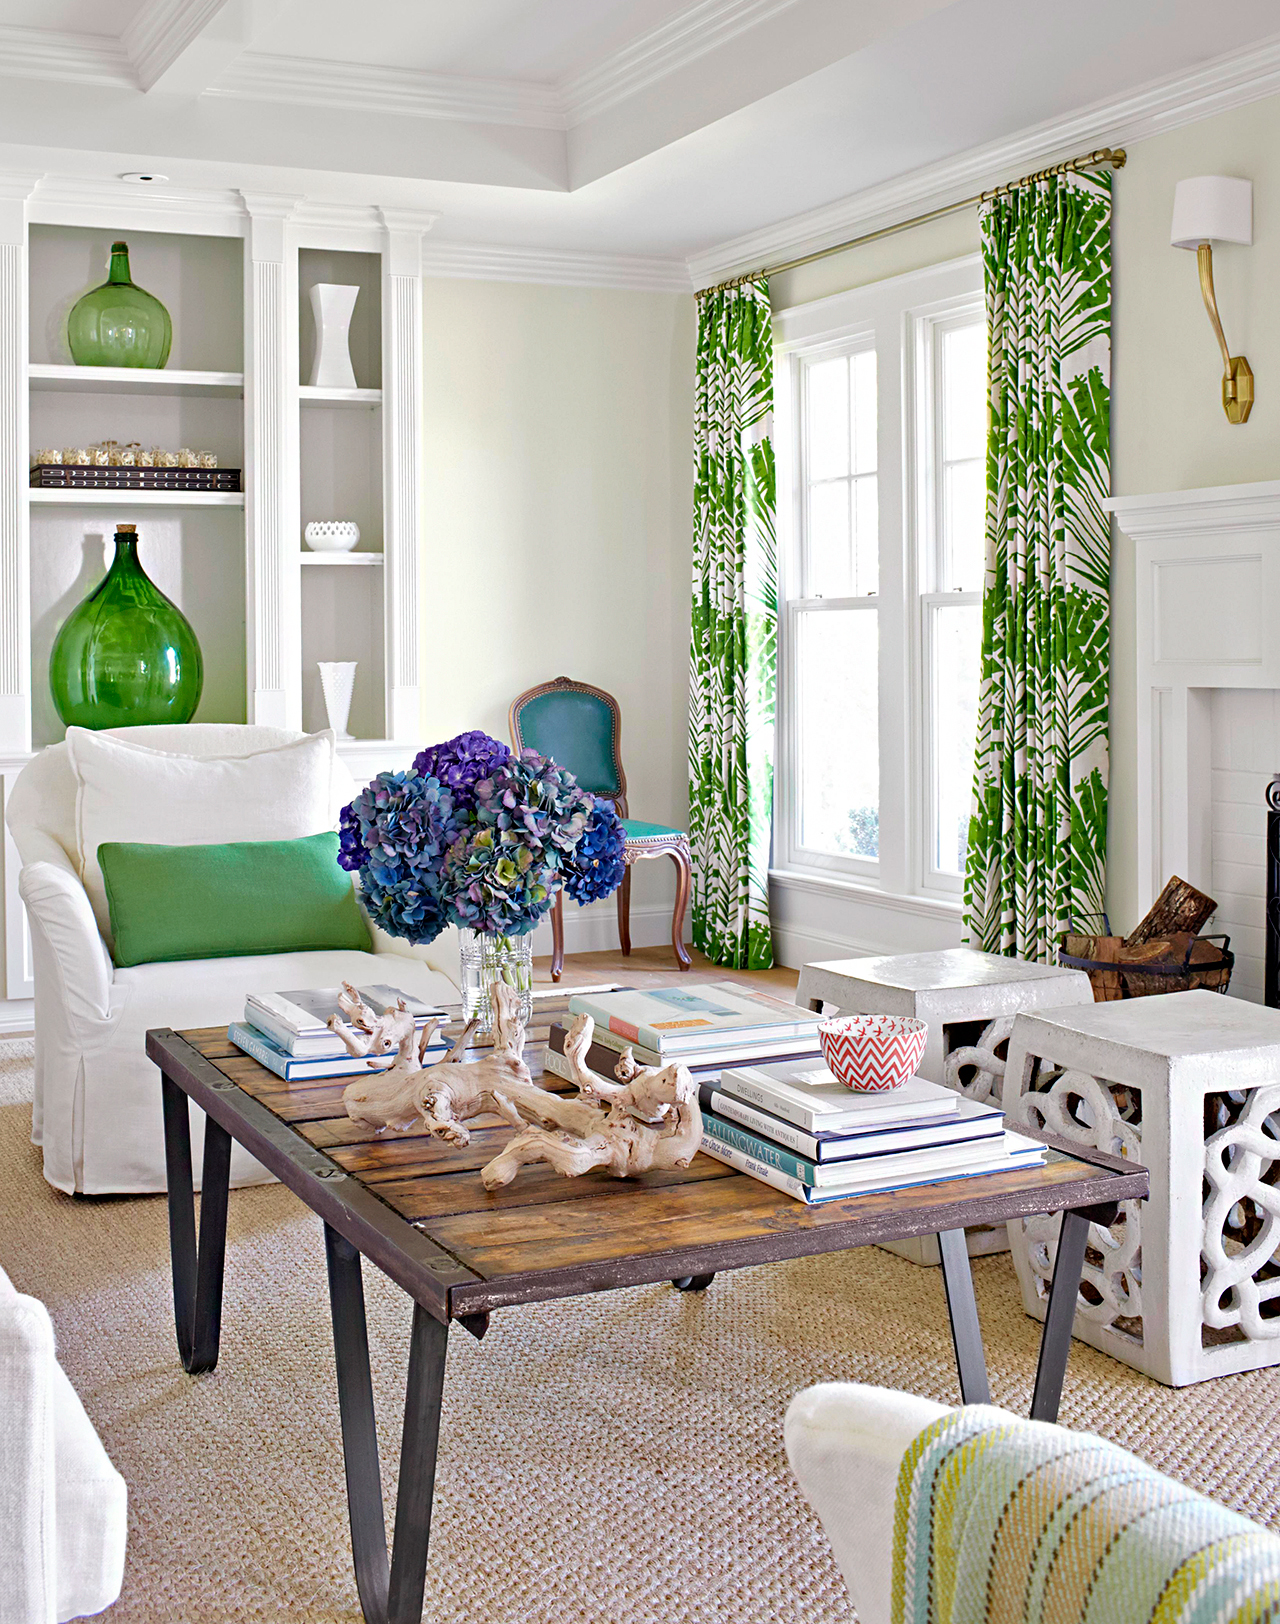 traditional sitting area with green accents